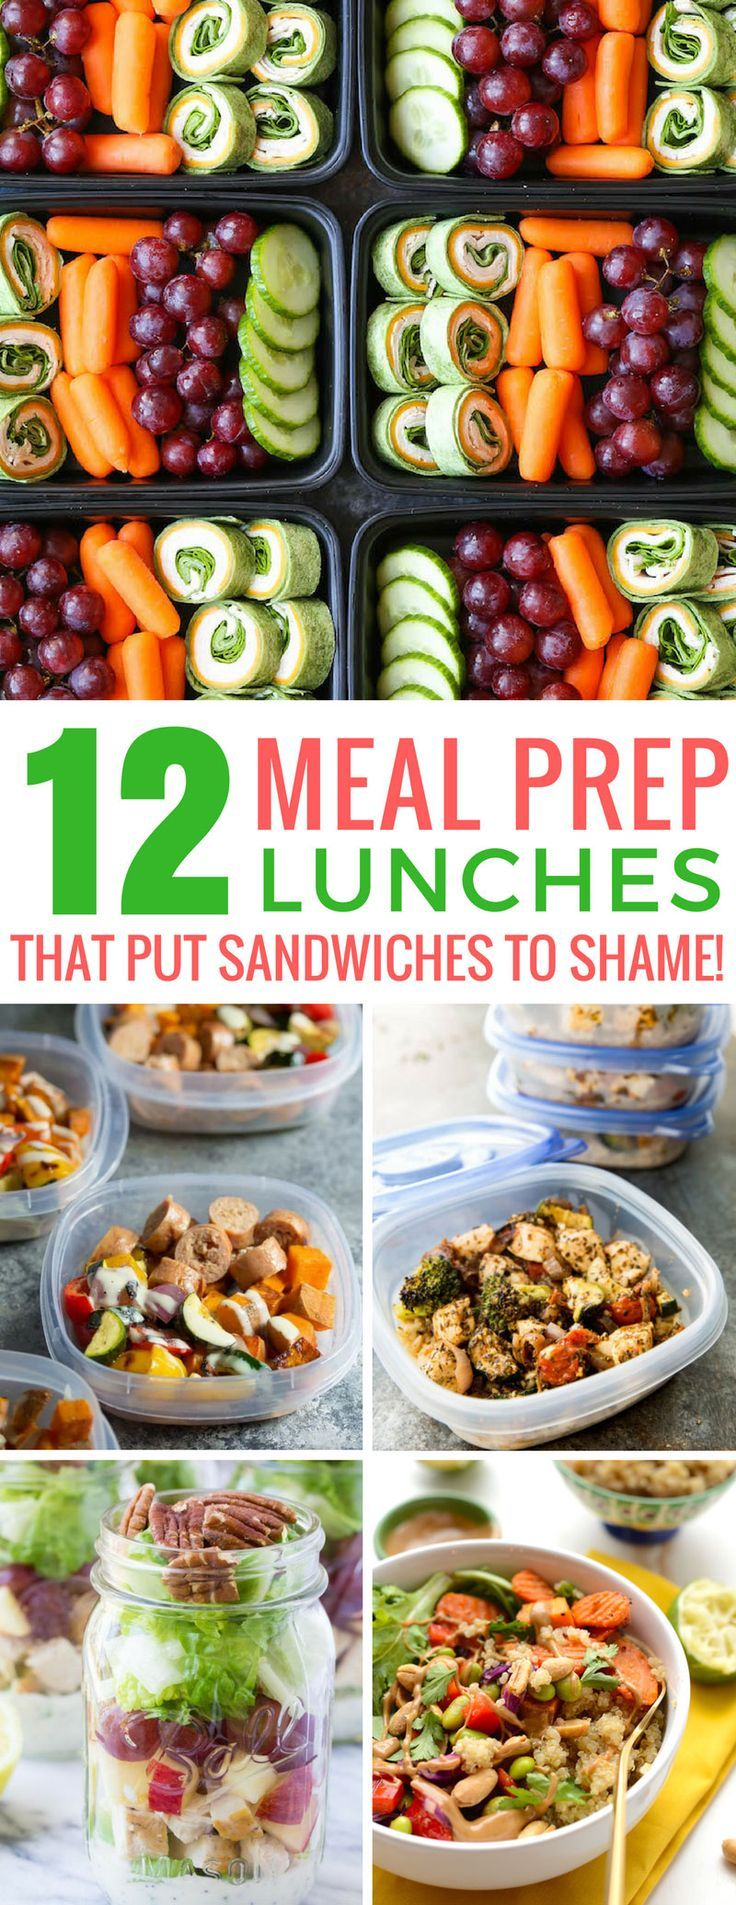 Loving these meal prep lunches! We'll never get bored eating these! Thanks for sharing!